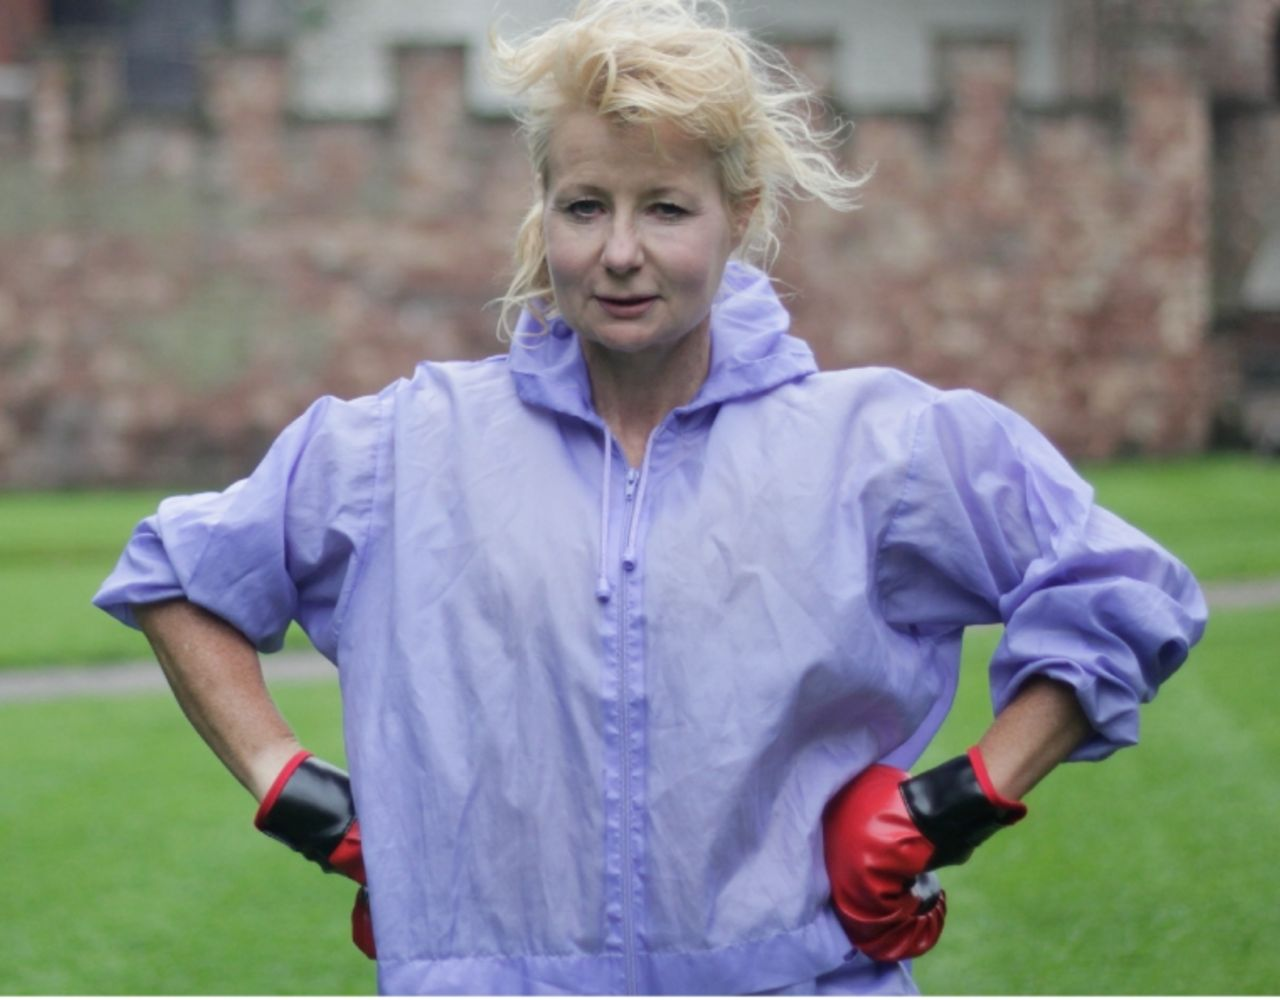 Woman standing in a field with boxing gloves on.